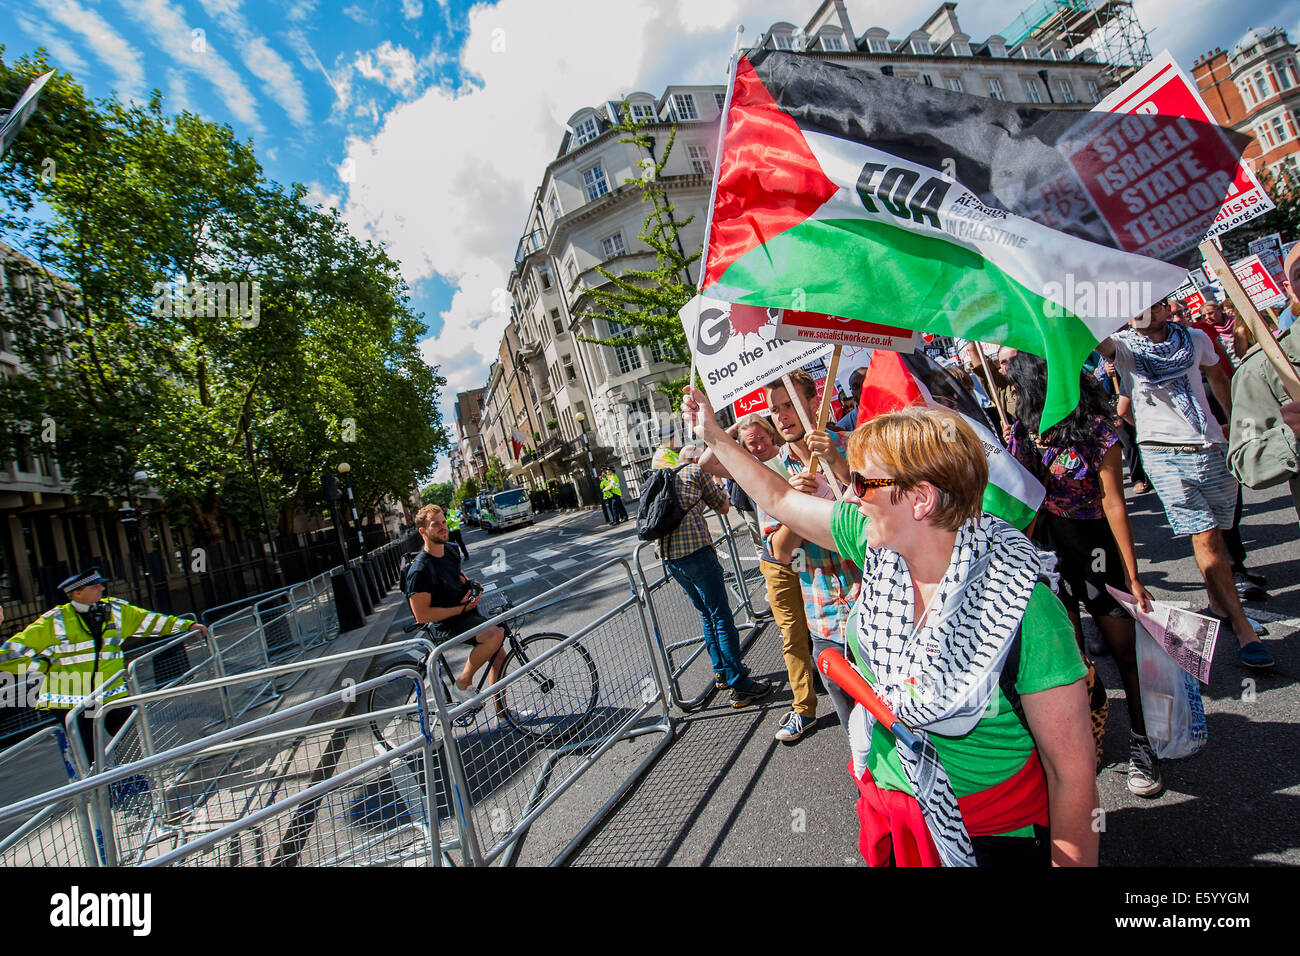 London, UK. 9th august, 2014. As the march passes the US embassy passions increase. Stop the 'massacre' - Stock Image